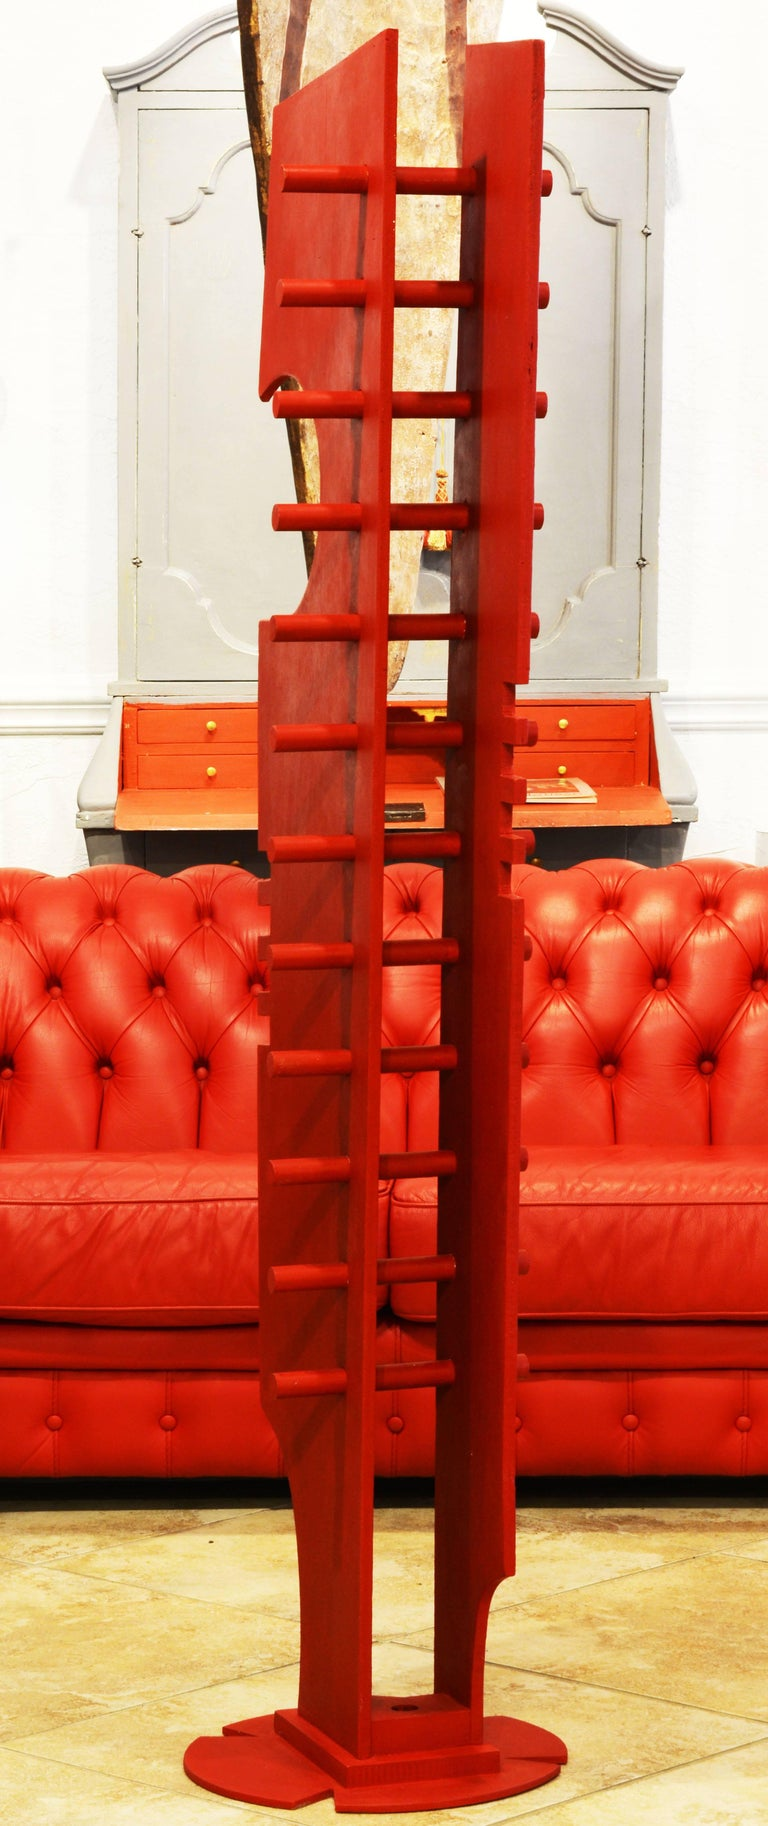 Modern Tall Abstract Red Wood Sculpture by Edward Toledano, British, 20th Century For Sale